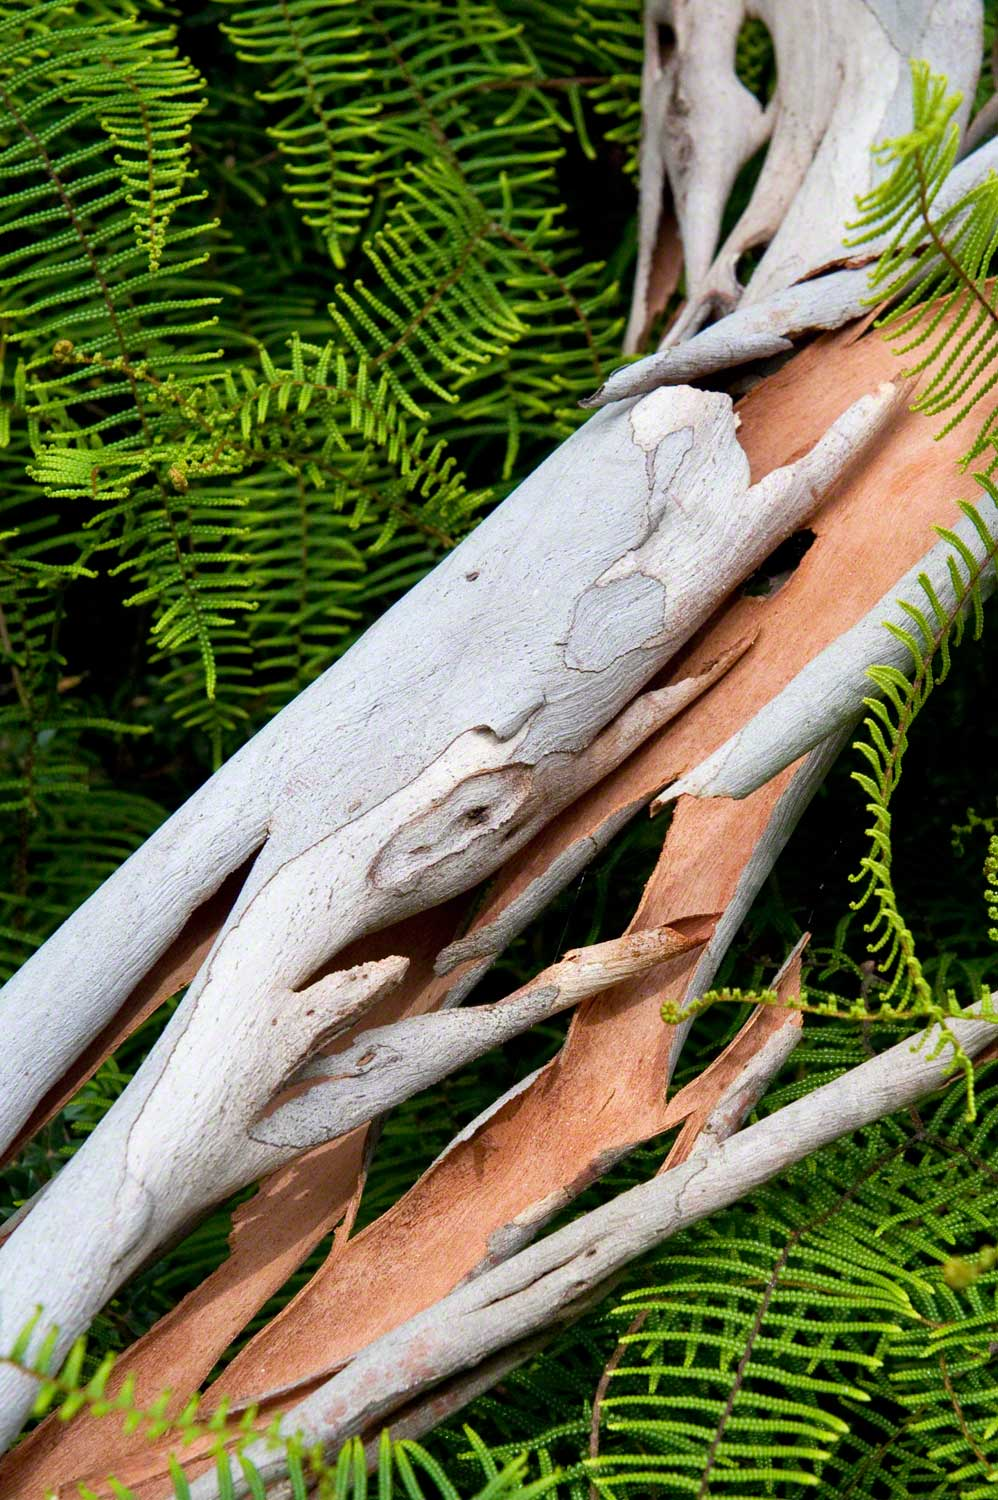 Warren-Hinder-LR-Bark-in-Ferns-Braeside.jpg